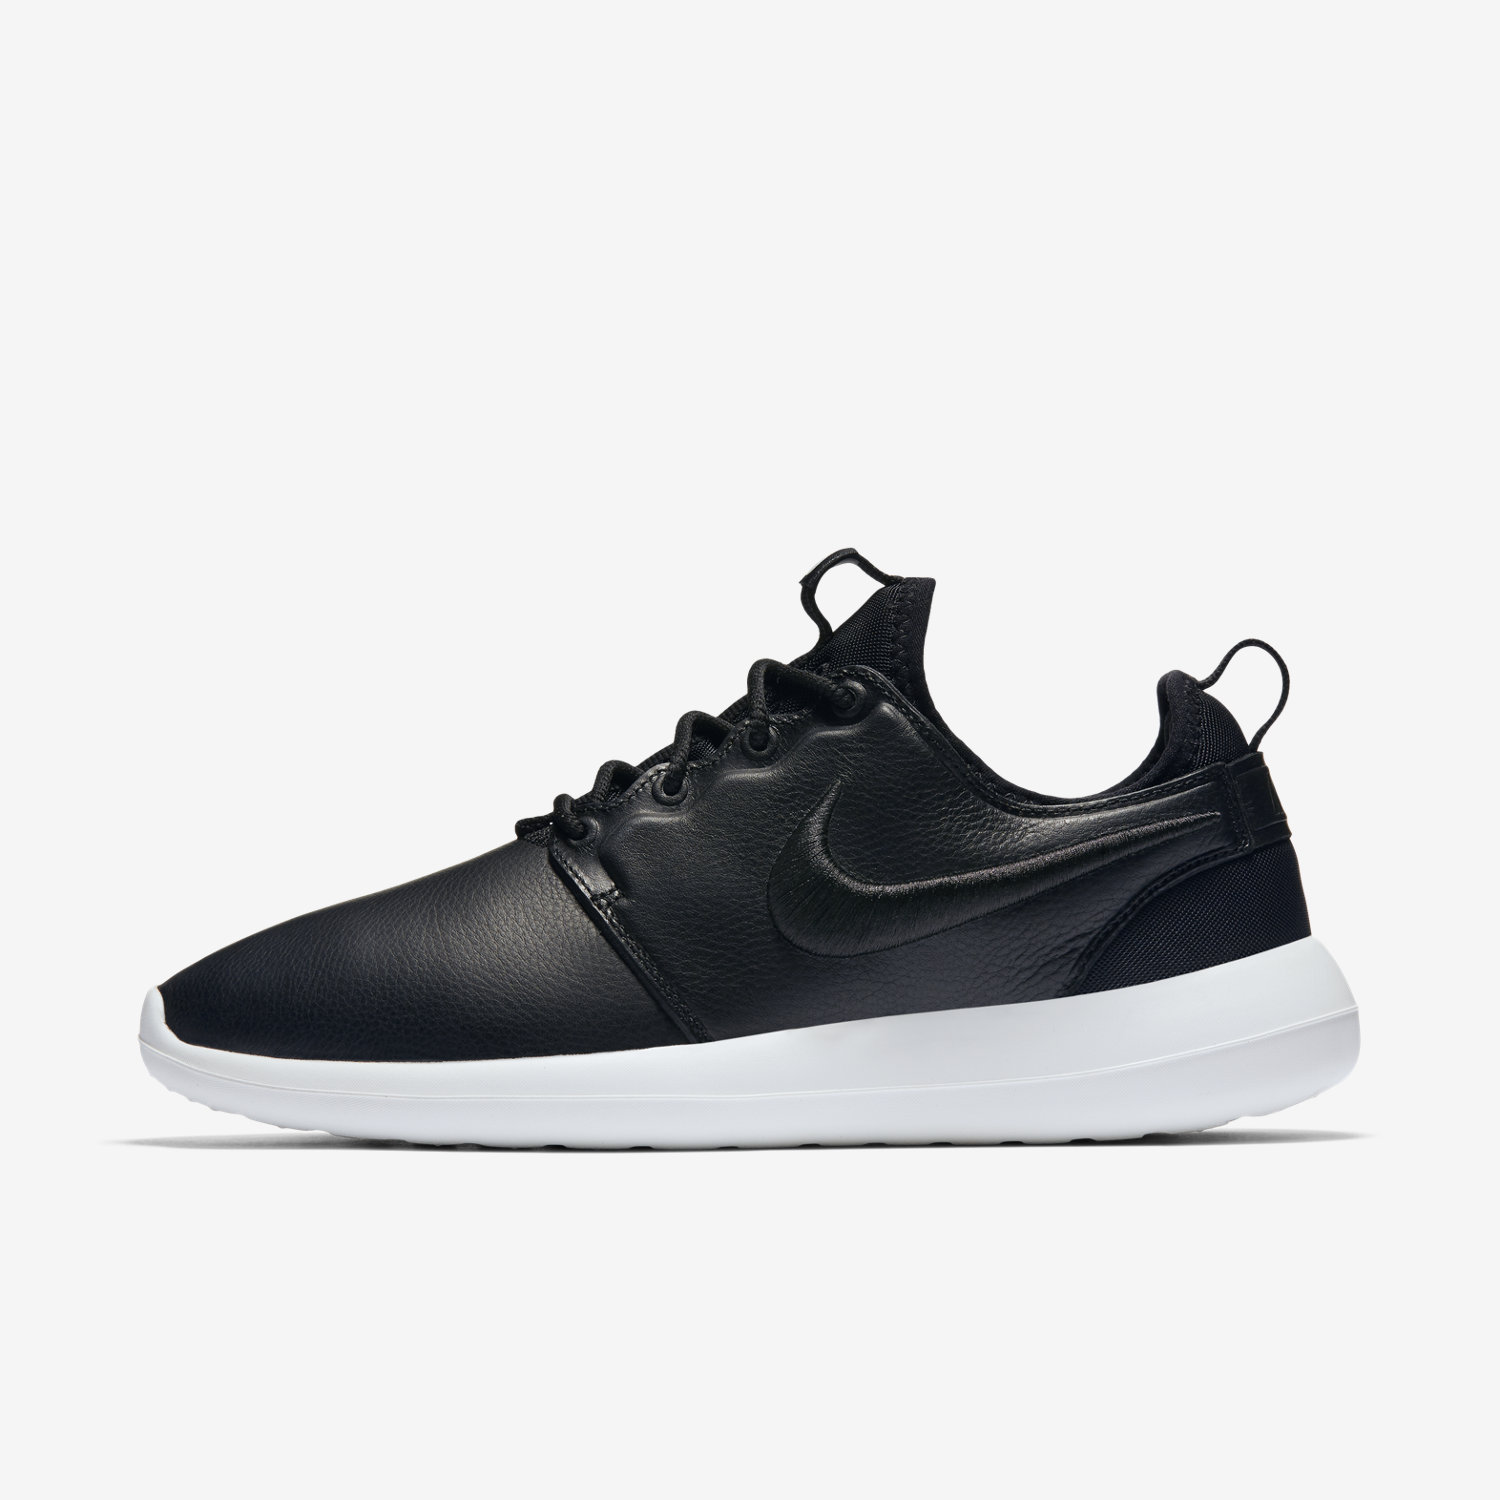 Nike Roshe Id Floral Nike Roshe Id University of Science and Arts of